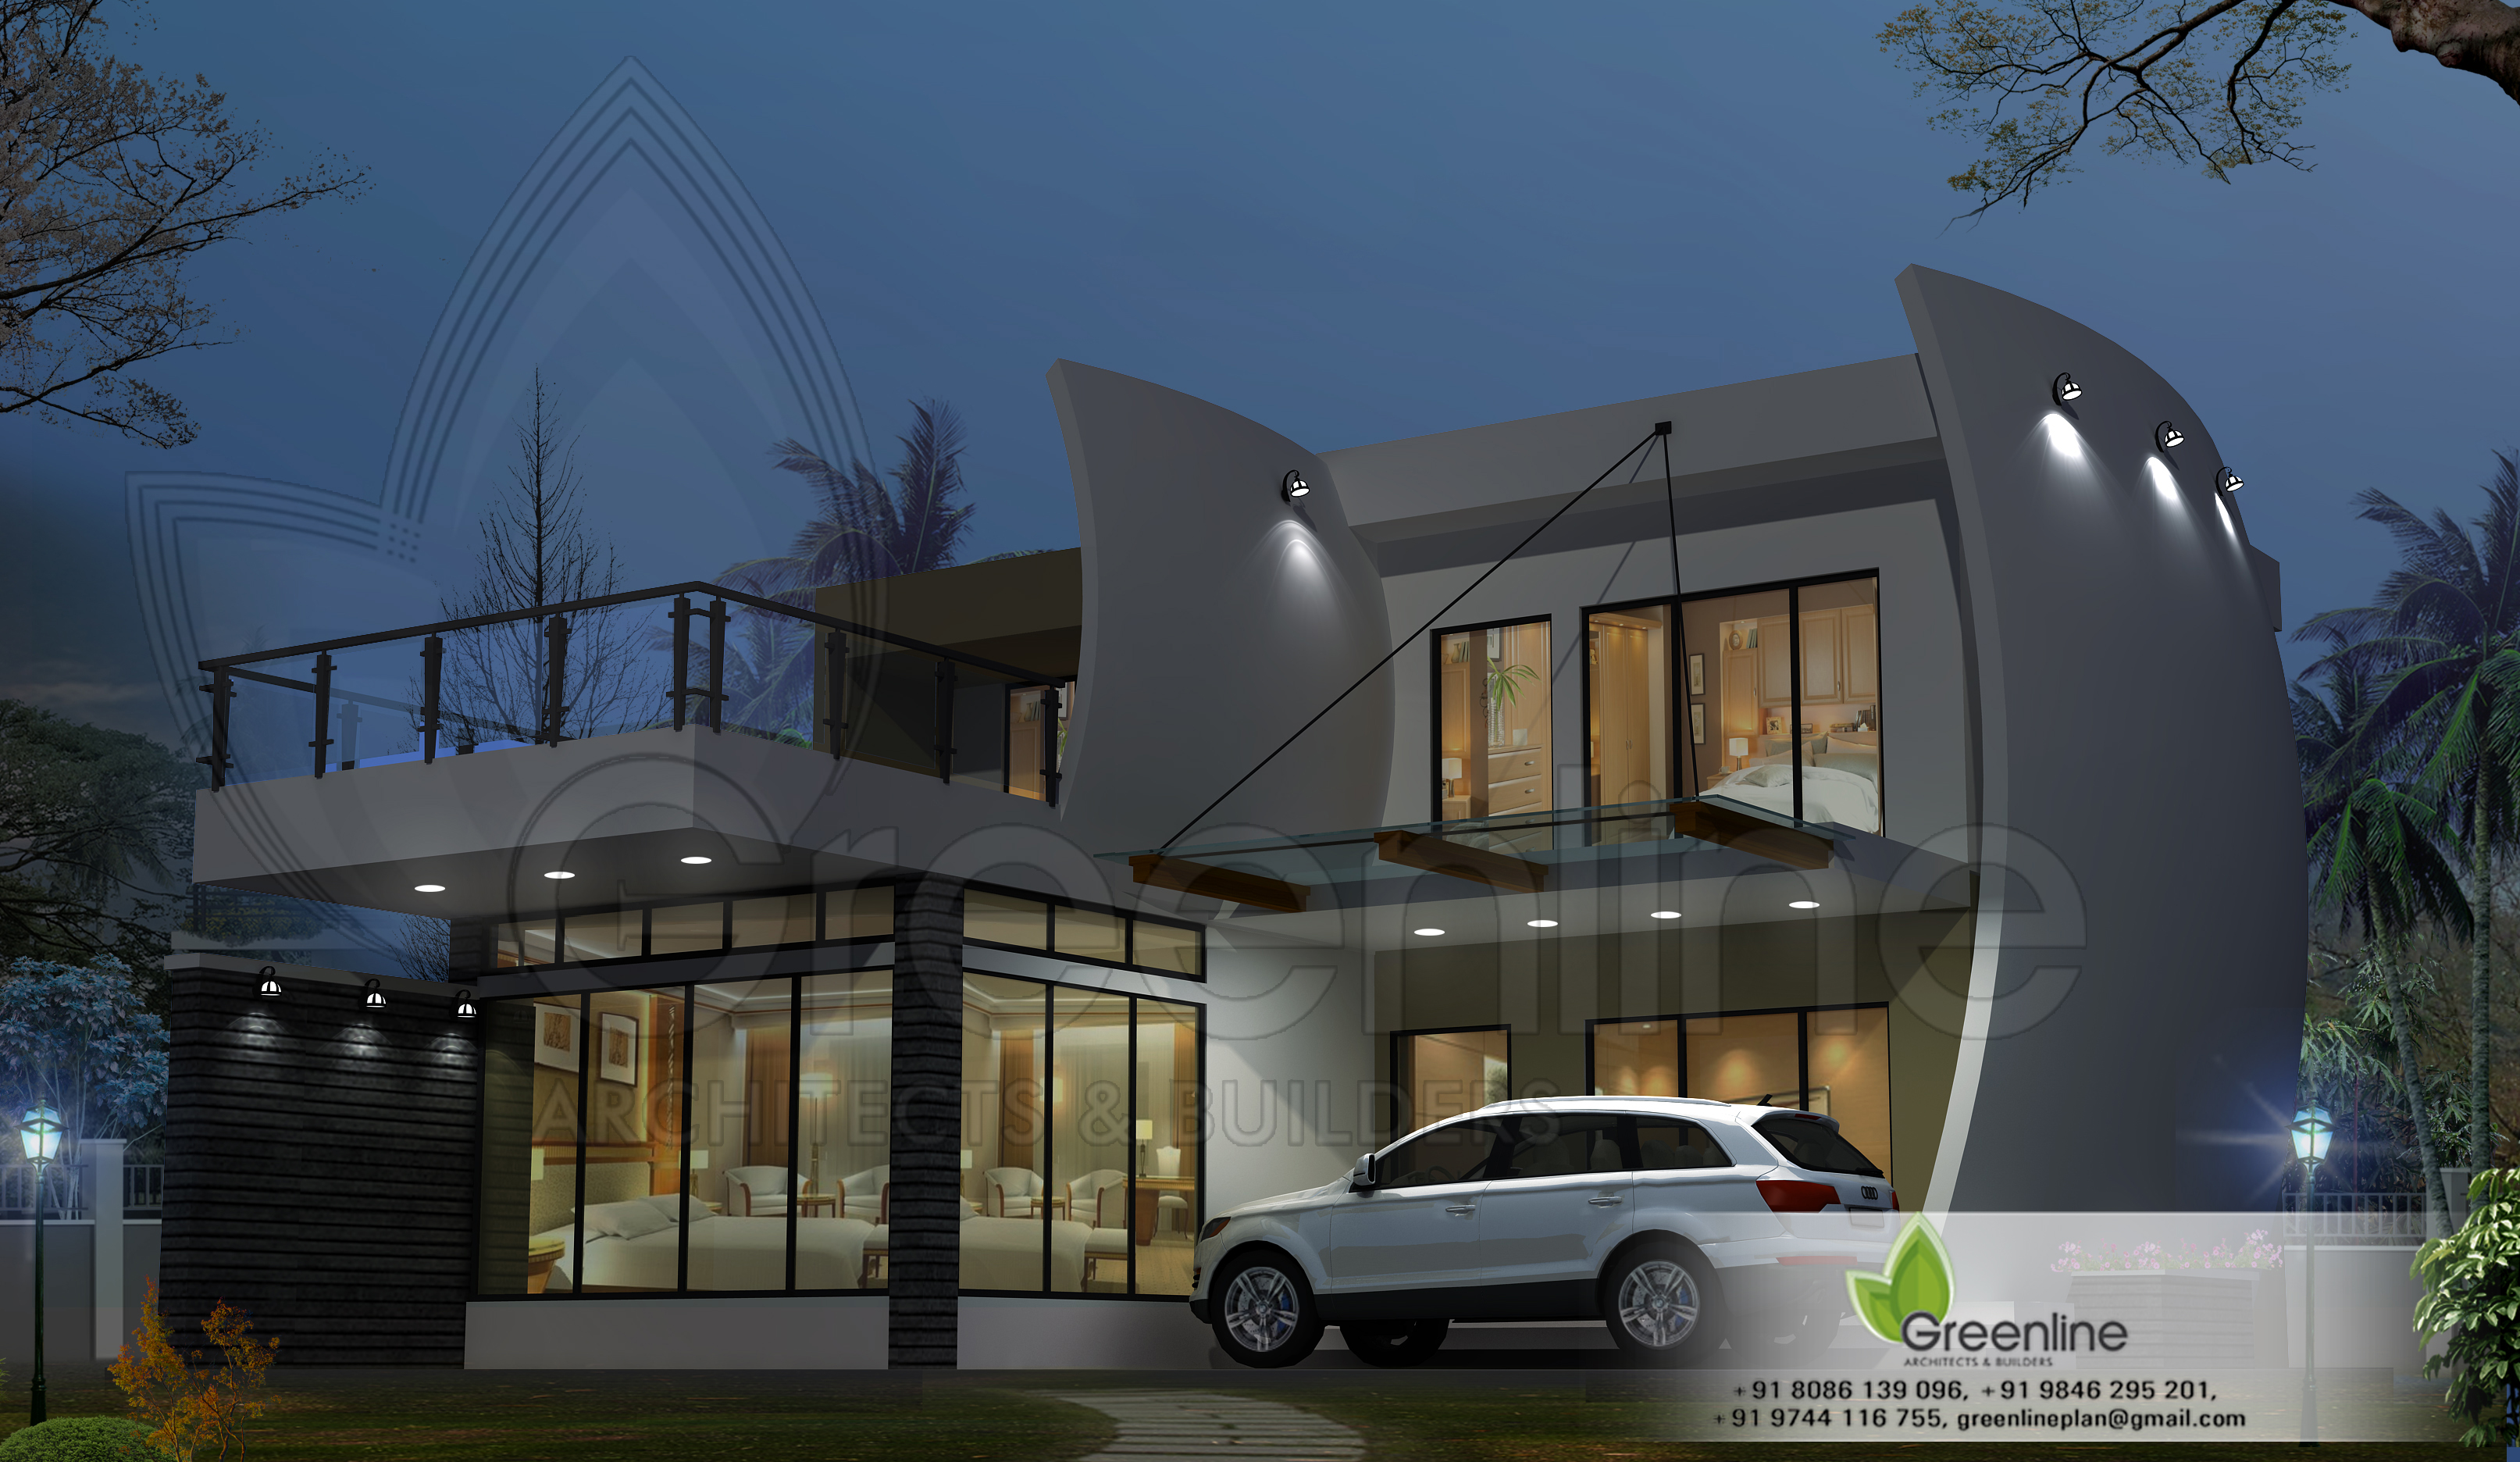 Greenline Architecture: Modern Contemporary Home Design By Greenline Architects